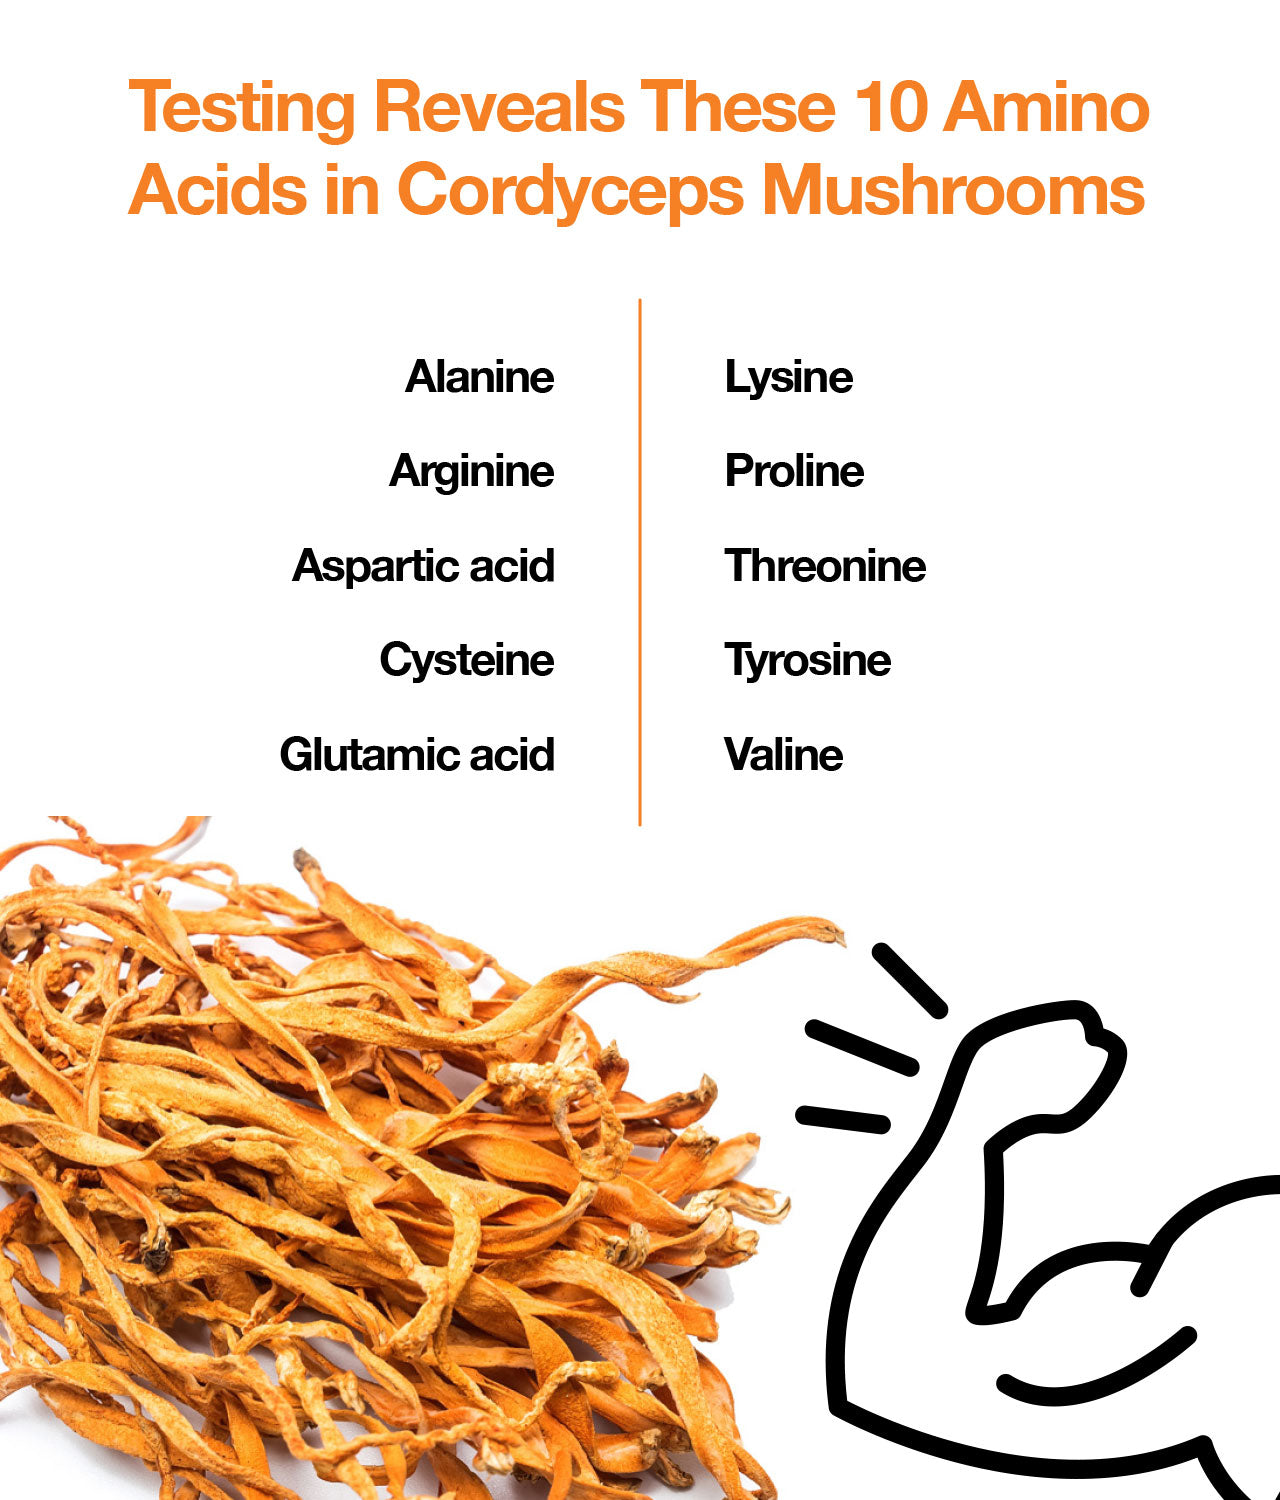 Testing Reveals These 10 Amino Acids in Cordyceps Mushrooms